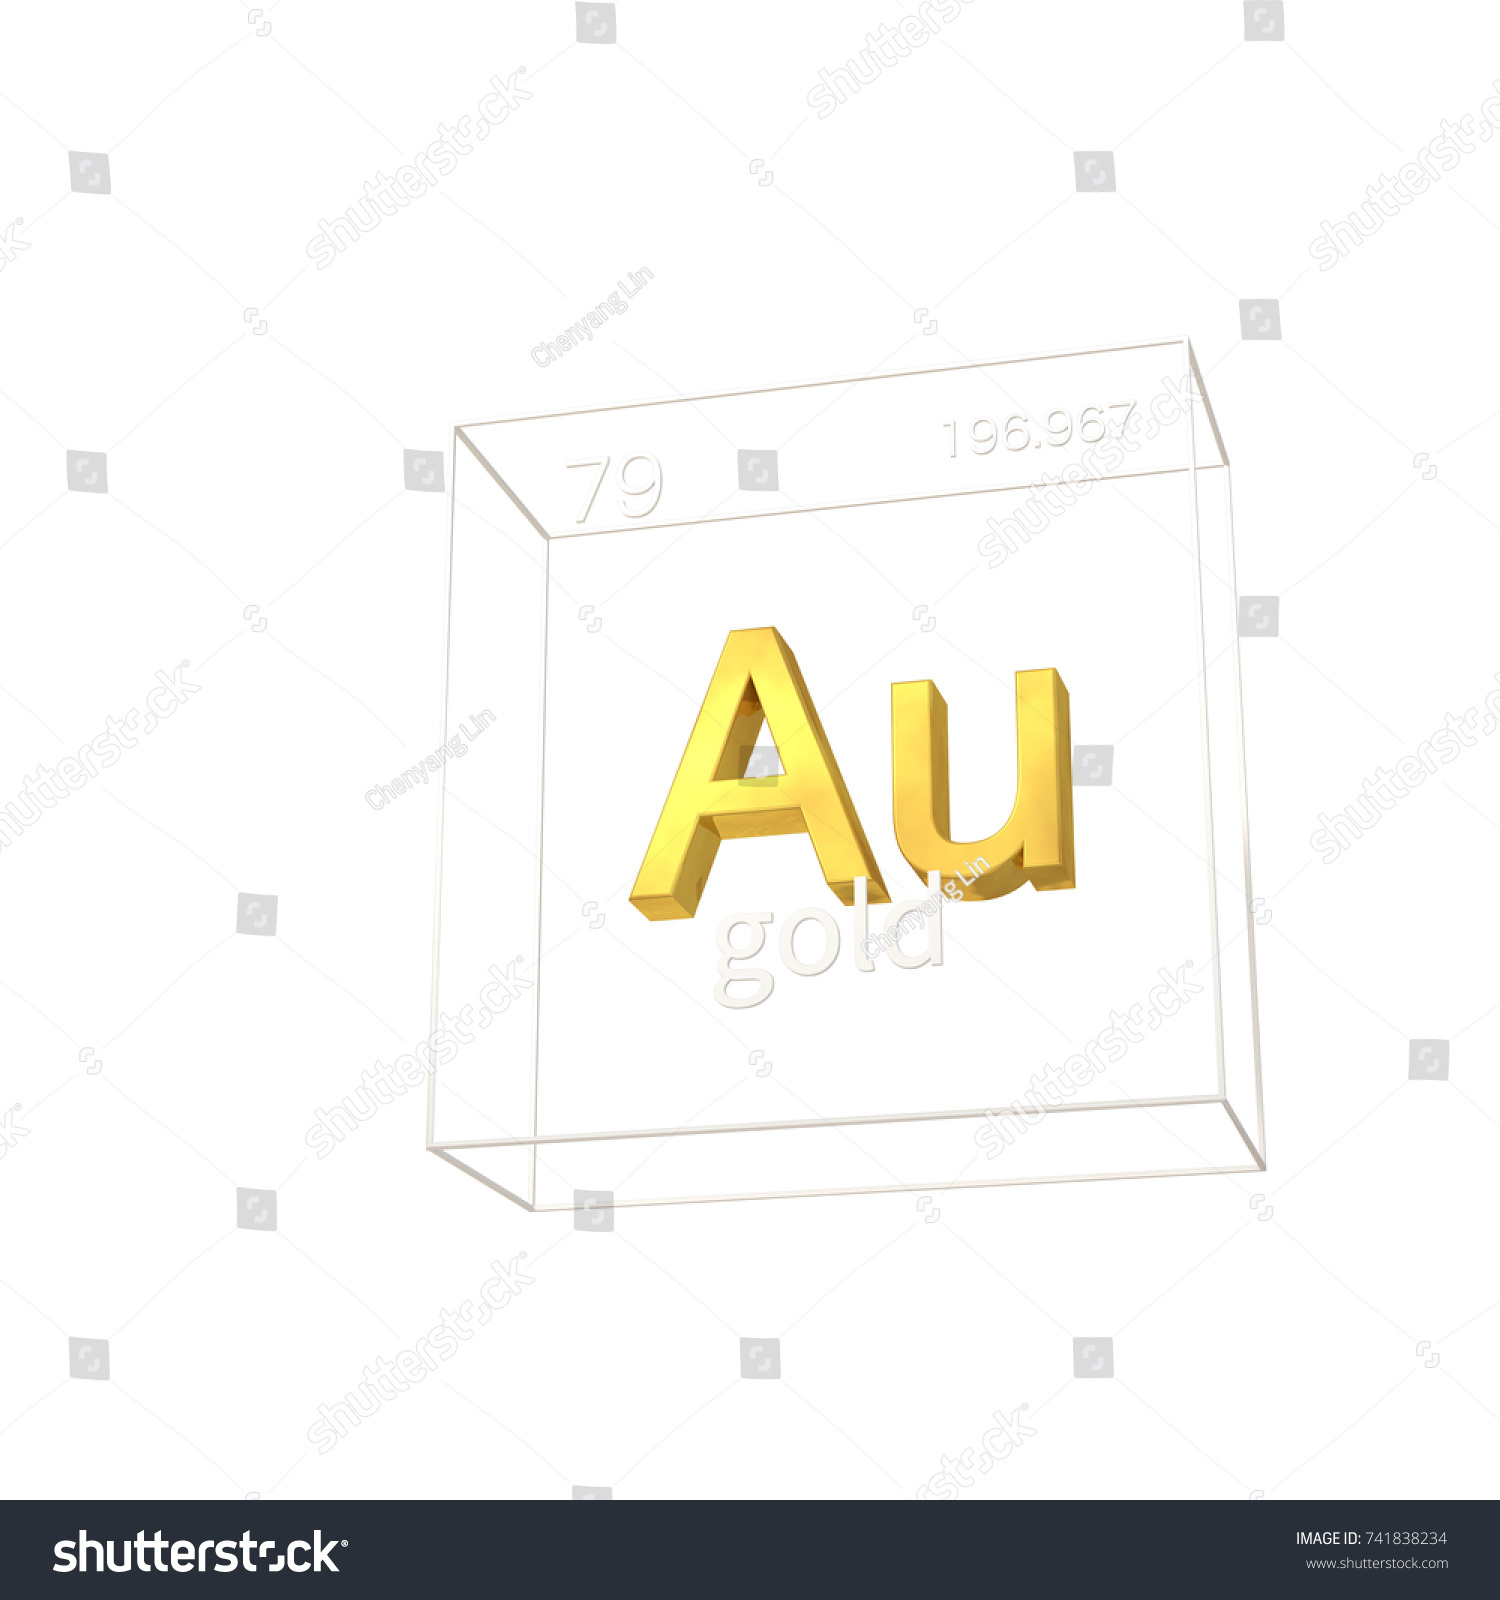 Periodic table gold and silver choice image periodic table images periodic table gold and silver choice image periodic table images gold chemical element atomic number atomic gamestrikefo Image collections